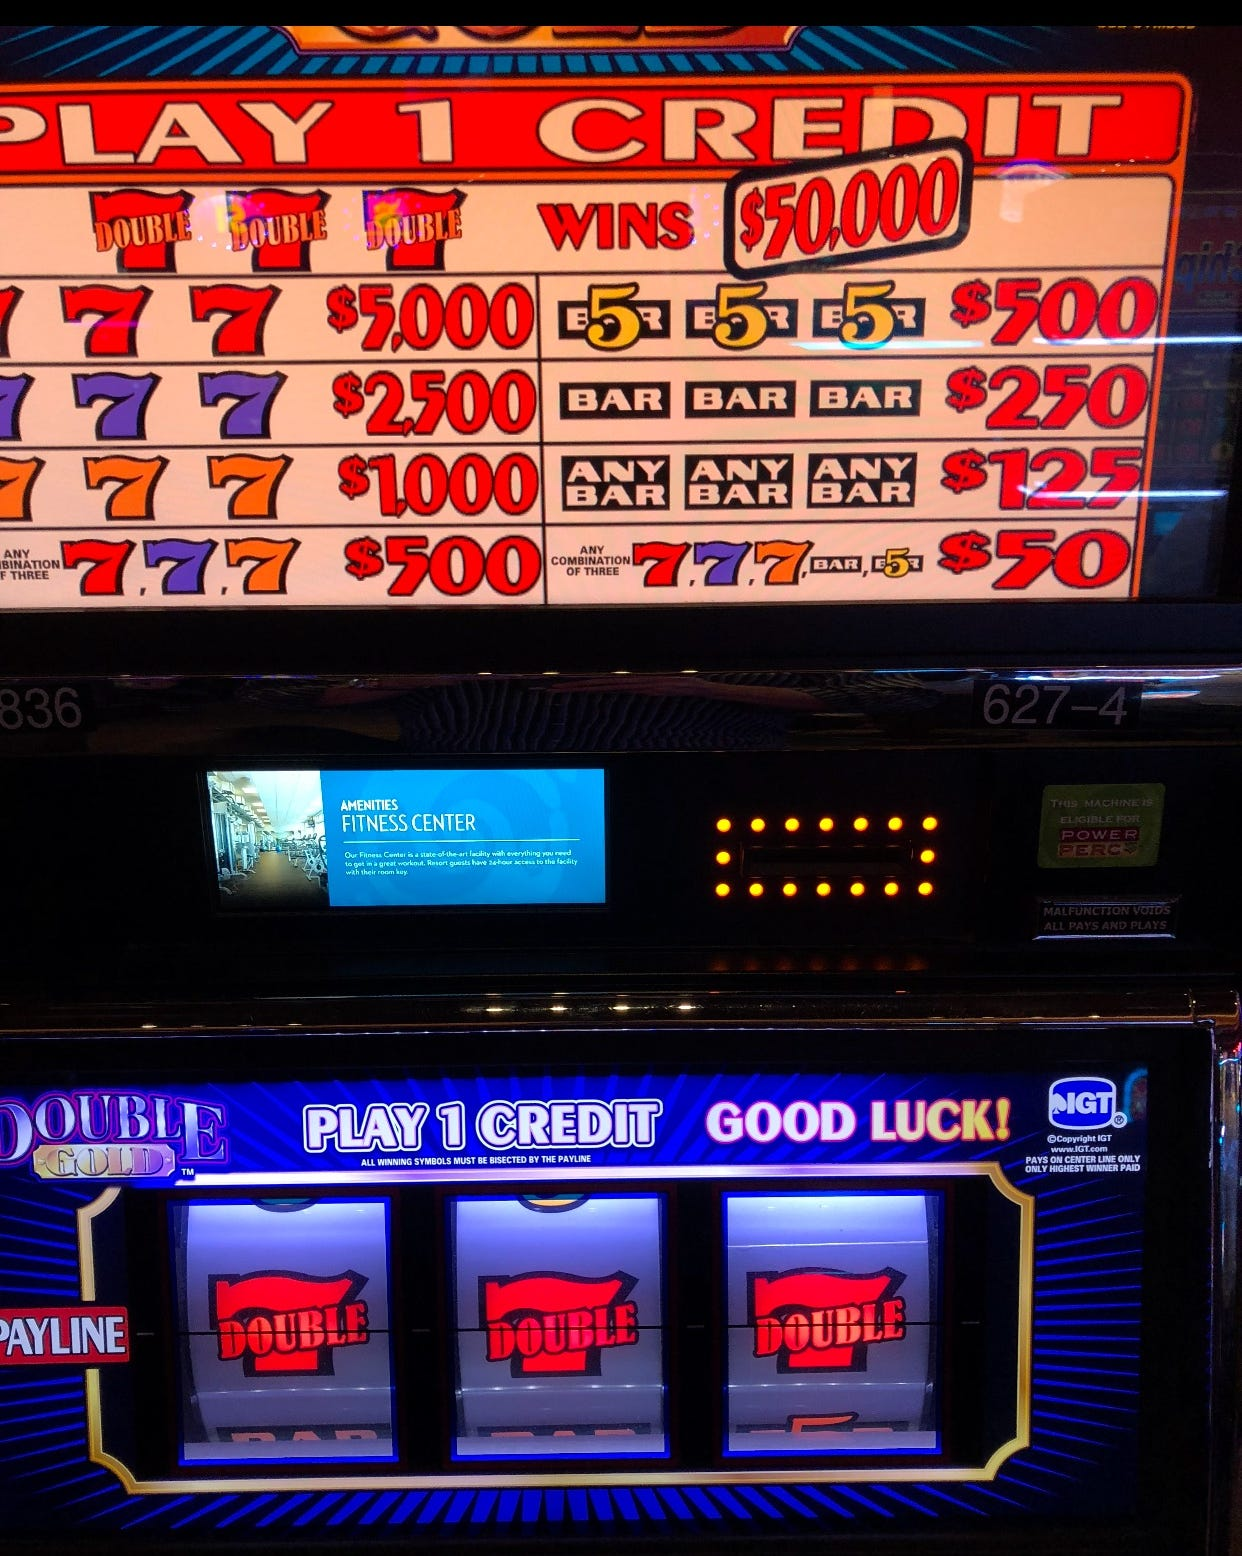 A photo Scottsdale resident Ryan Sherry took of what he thought was a $50,000 jackpot.